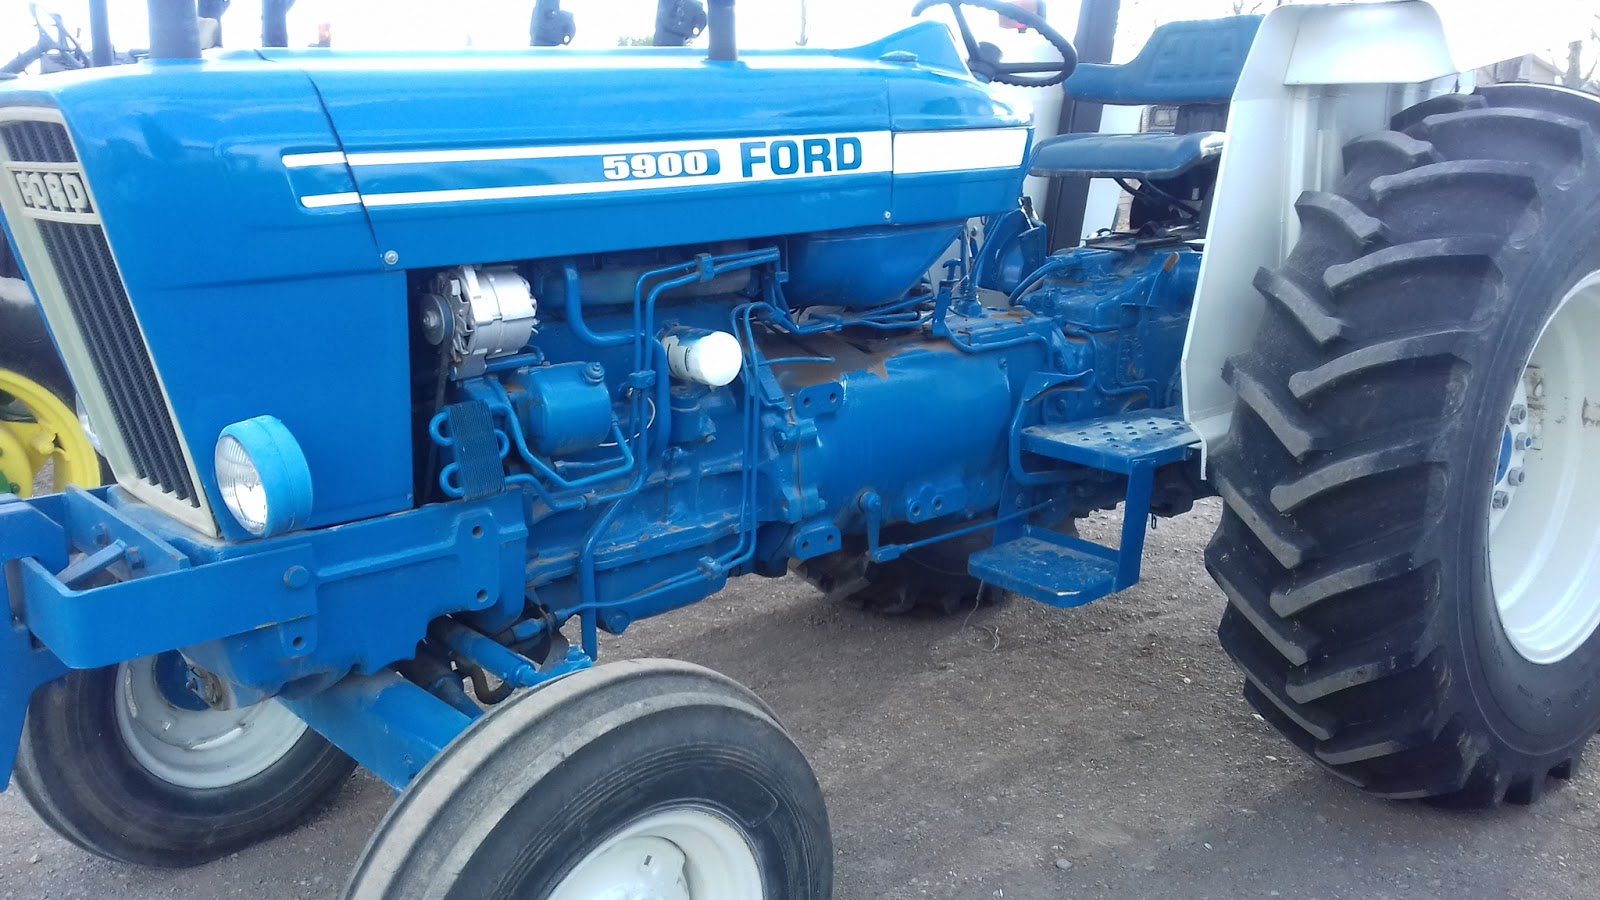 Ford 5900 Tractor Parts : Ford pictures to pin on pinterest thepinsta